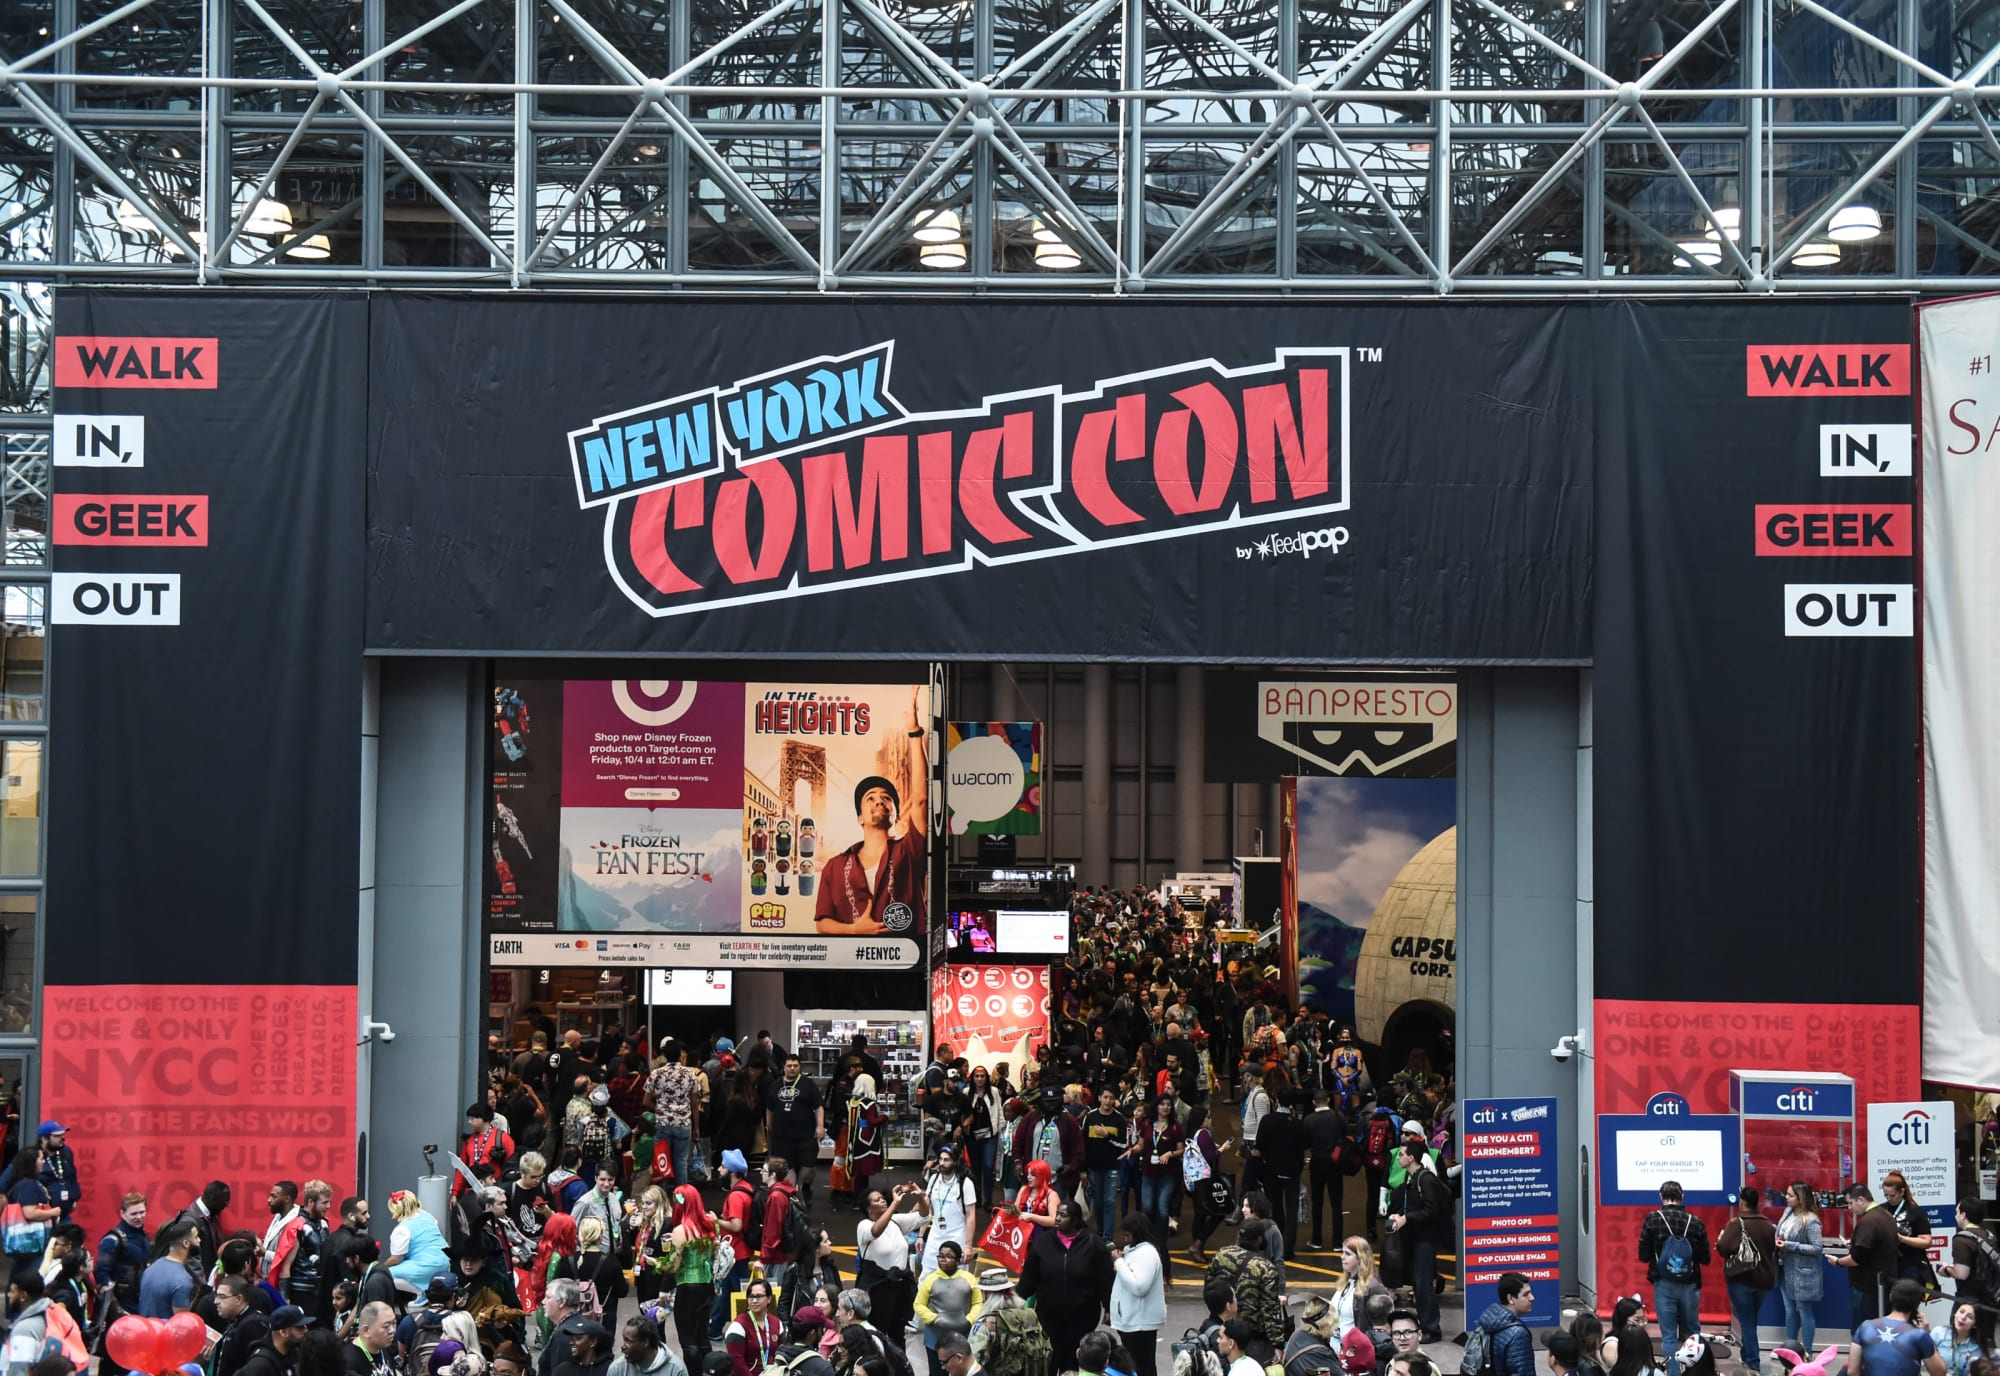 New York Comic Con cancels physical event, will go virtual for 2020